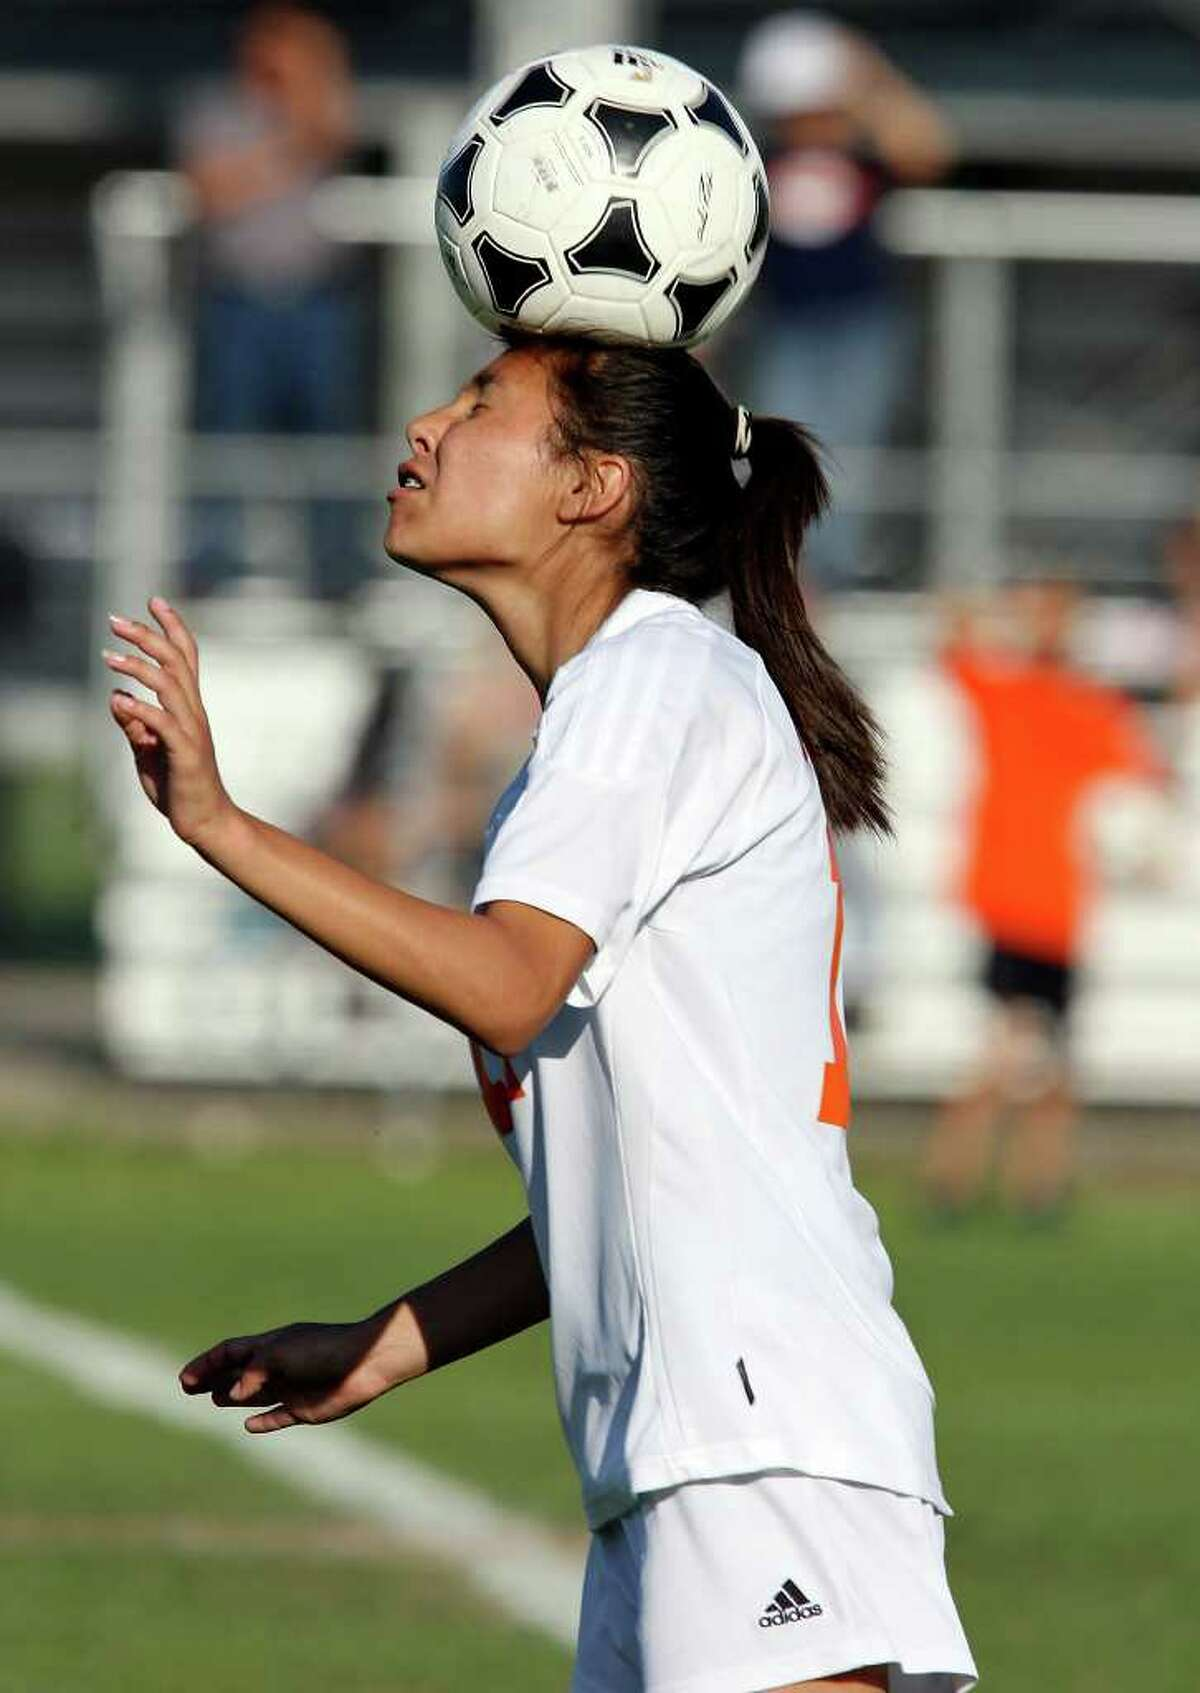 Burbank's Leticia Gomez heads the ball during first half action against Brennan in their Class 4A first round playoff game Friday March 30, 2012 at SAISD Sports Complex.